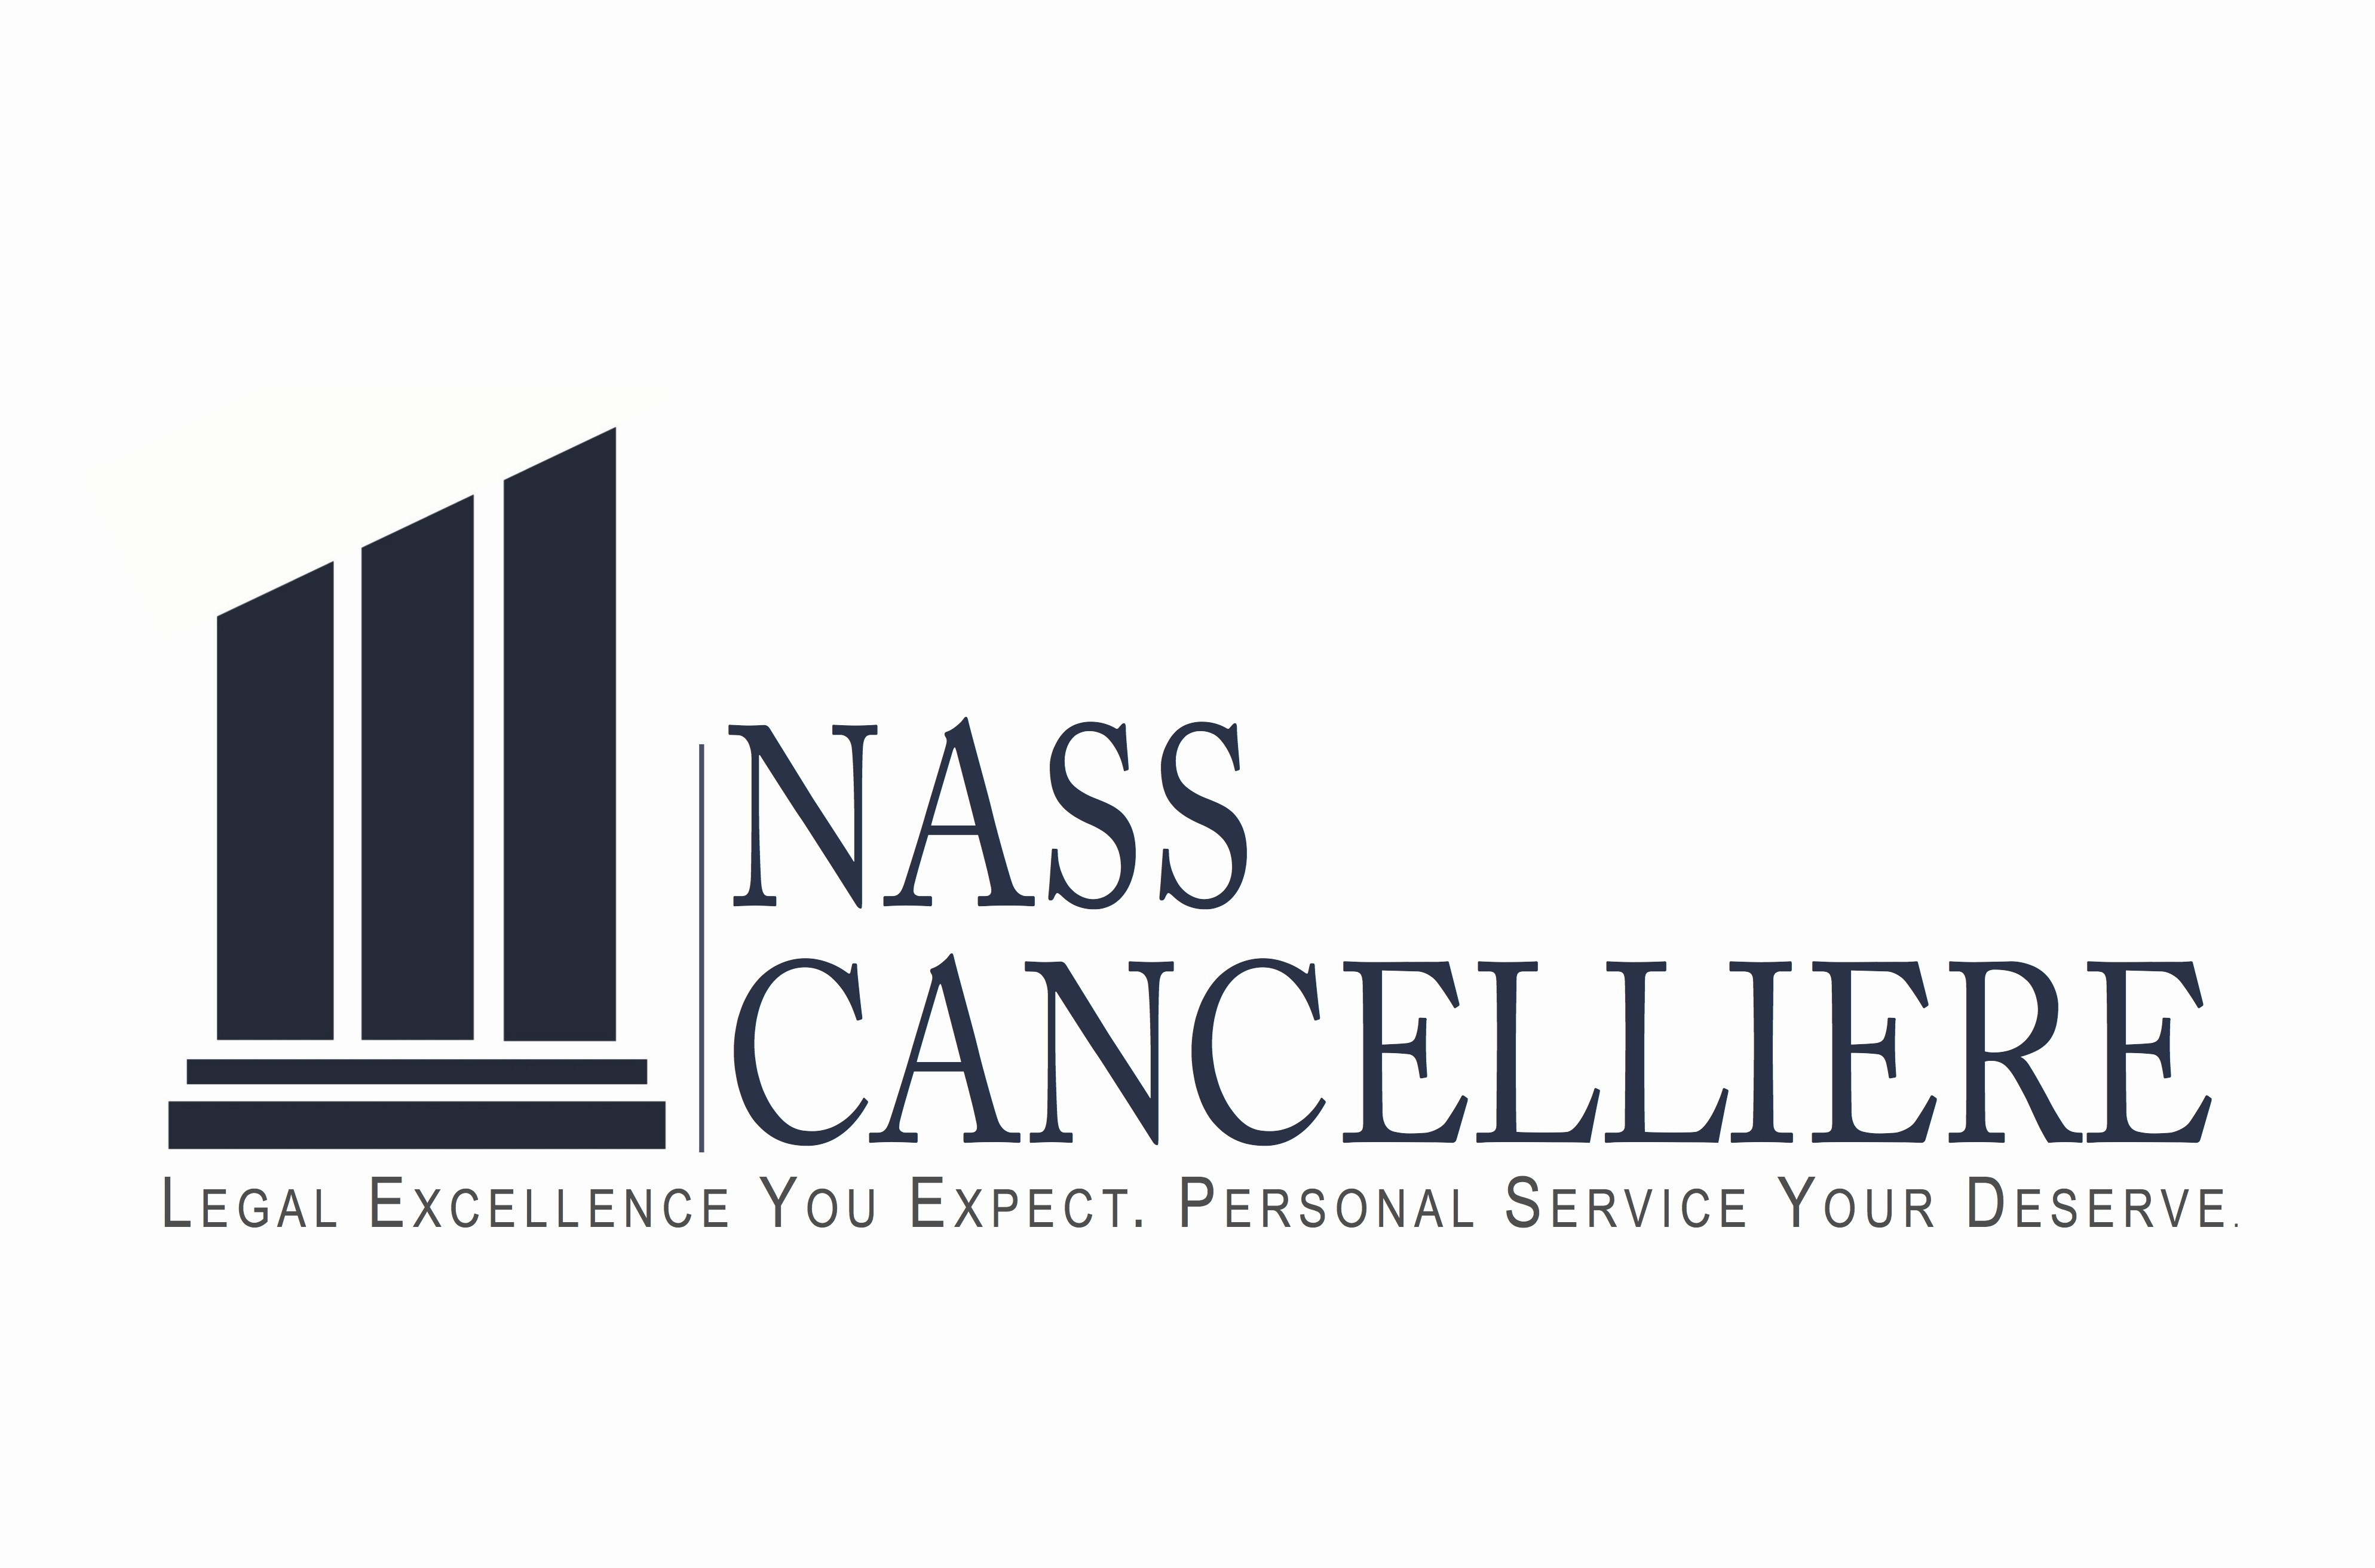 NASS CANCELLIERE